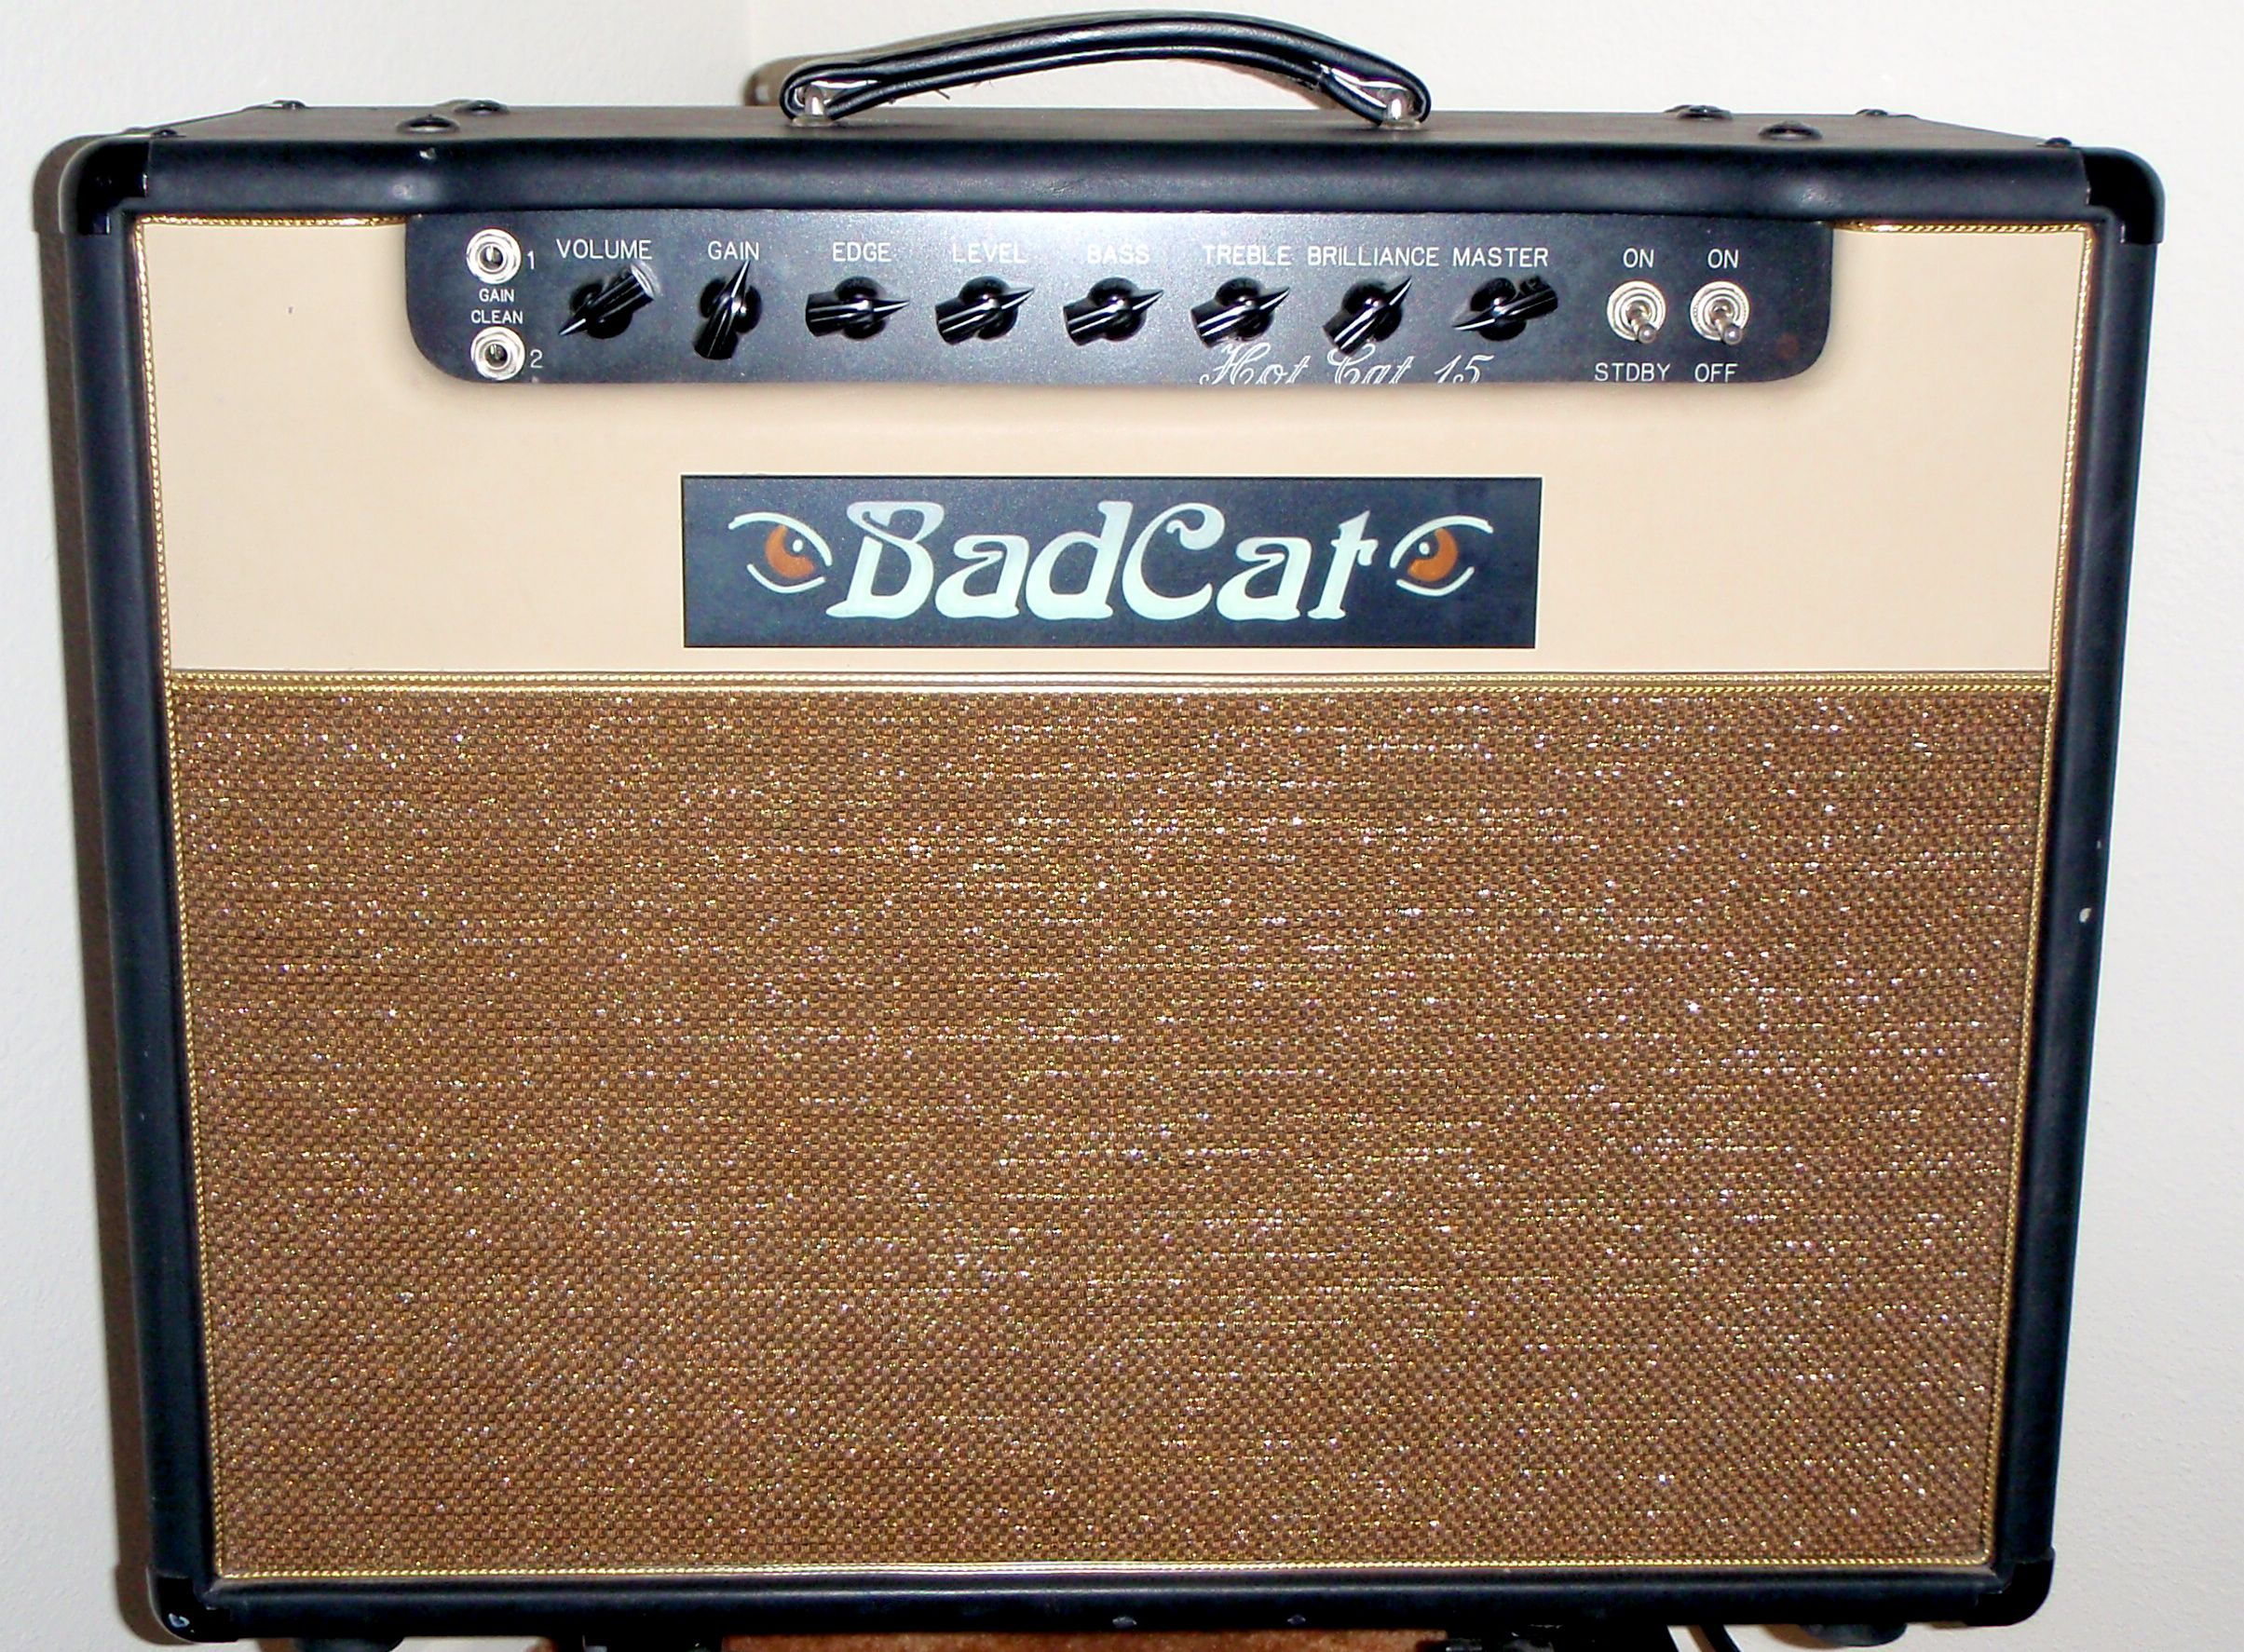 My old Bad Cat Hot Cat 15w amp. Loved this amp, only